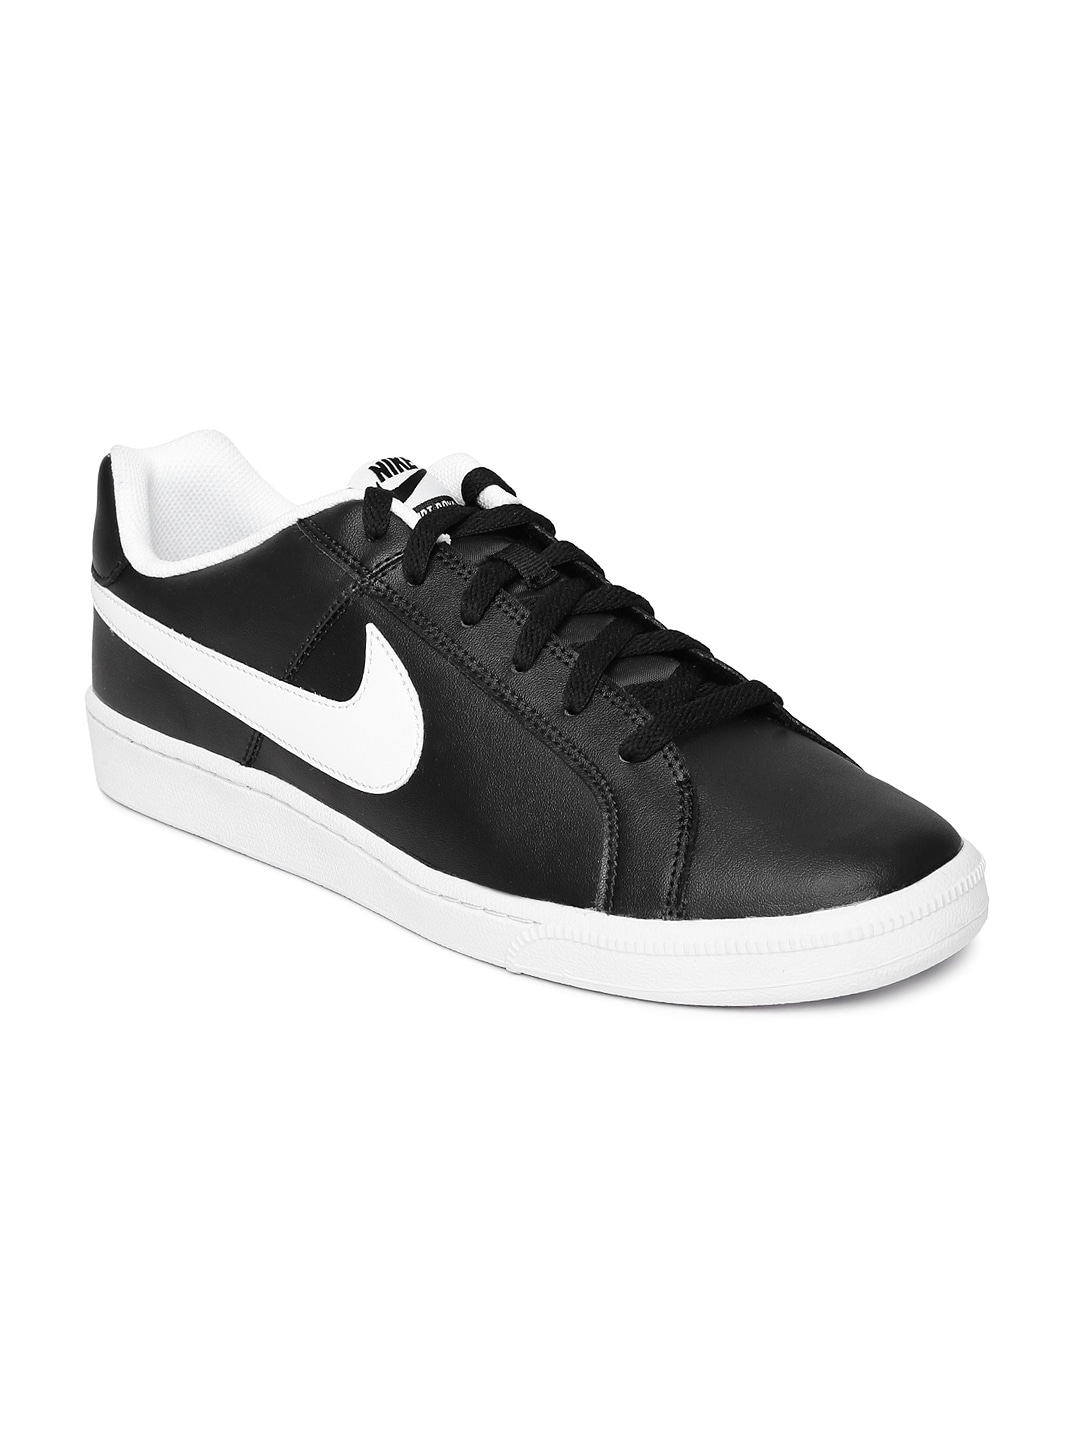 Casual Shoes Black Buy Nike Green VGUSLqzMp